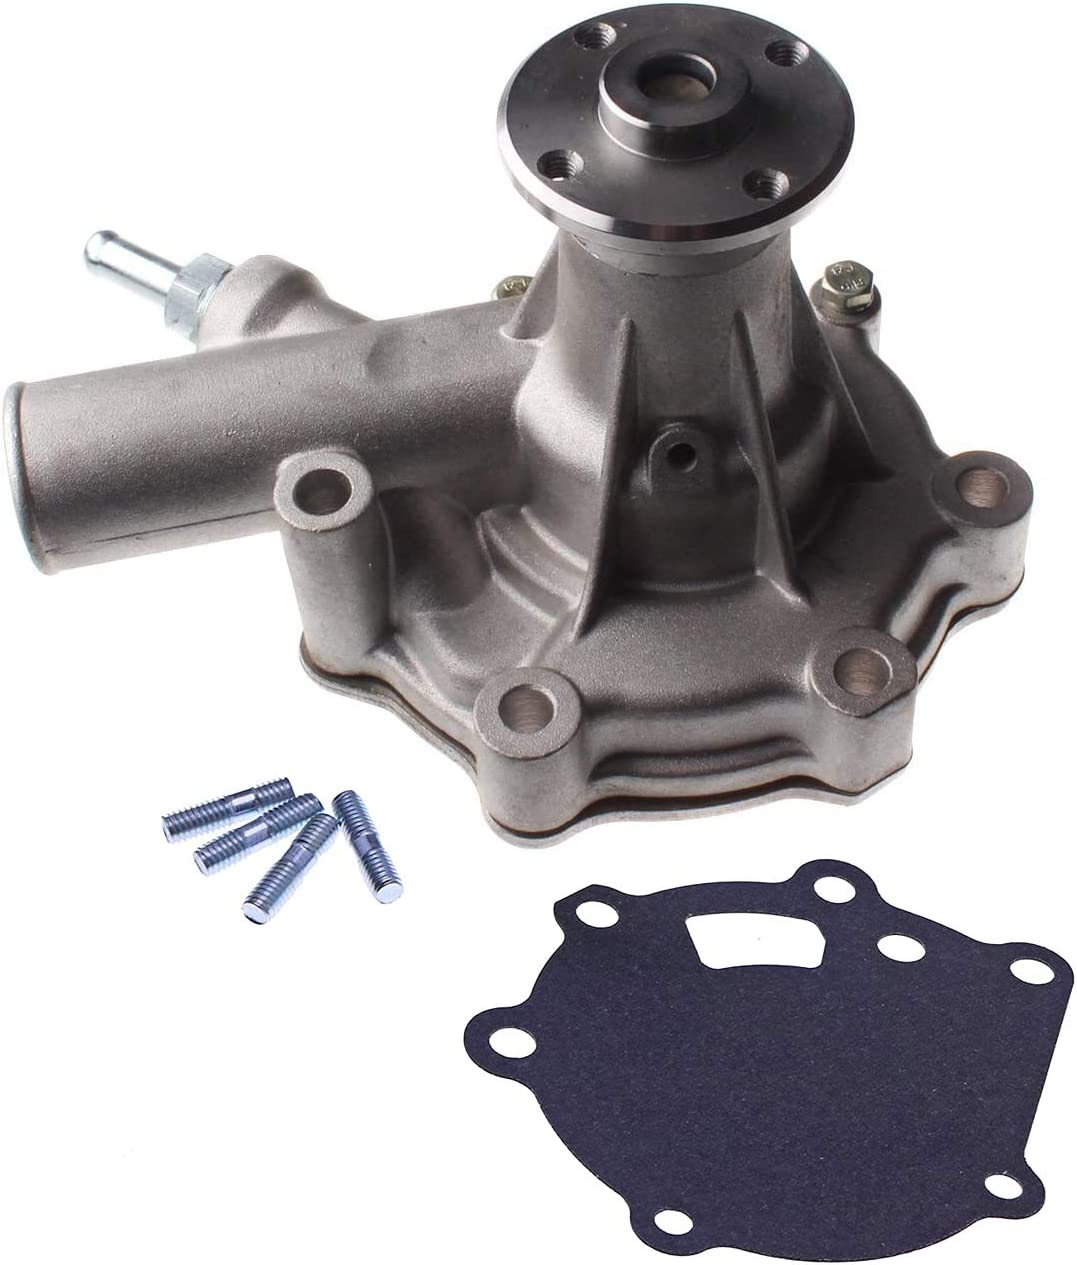 Water Pump MM409302 for Case IH Tractor 255 234 244 254 245 235 1 year warranty online shopping